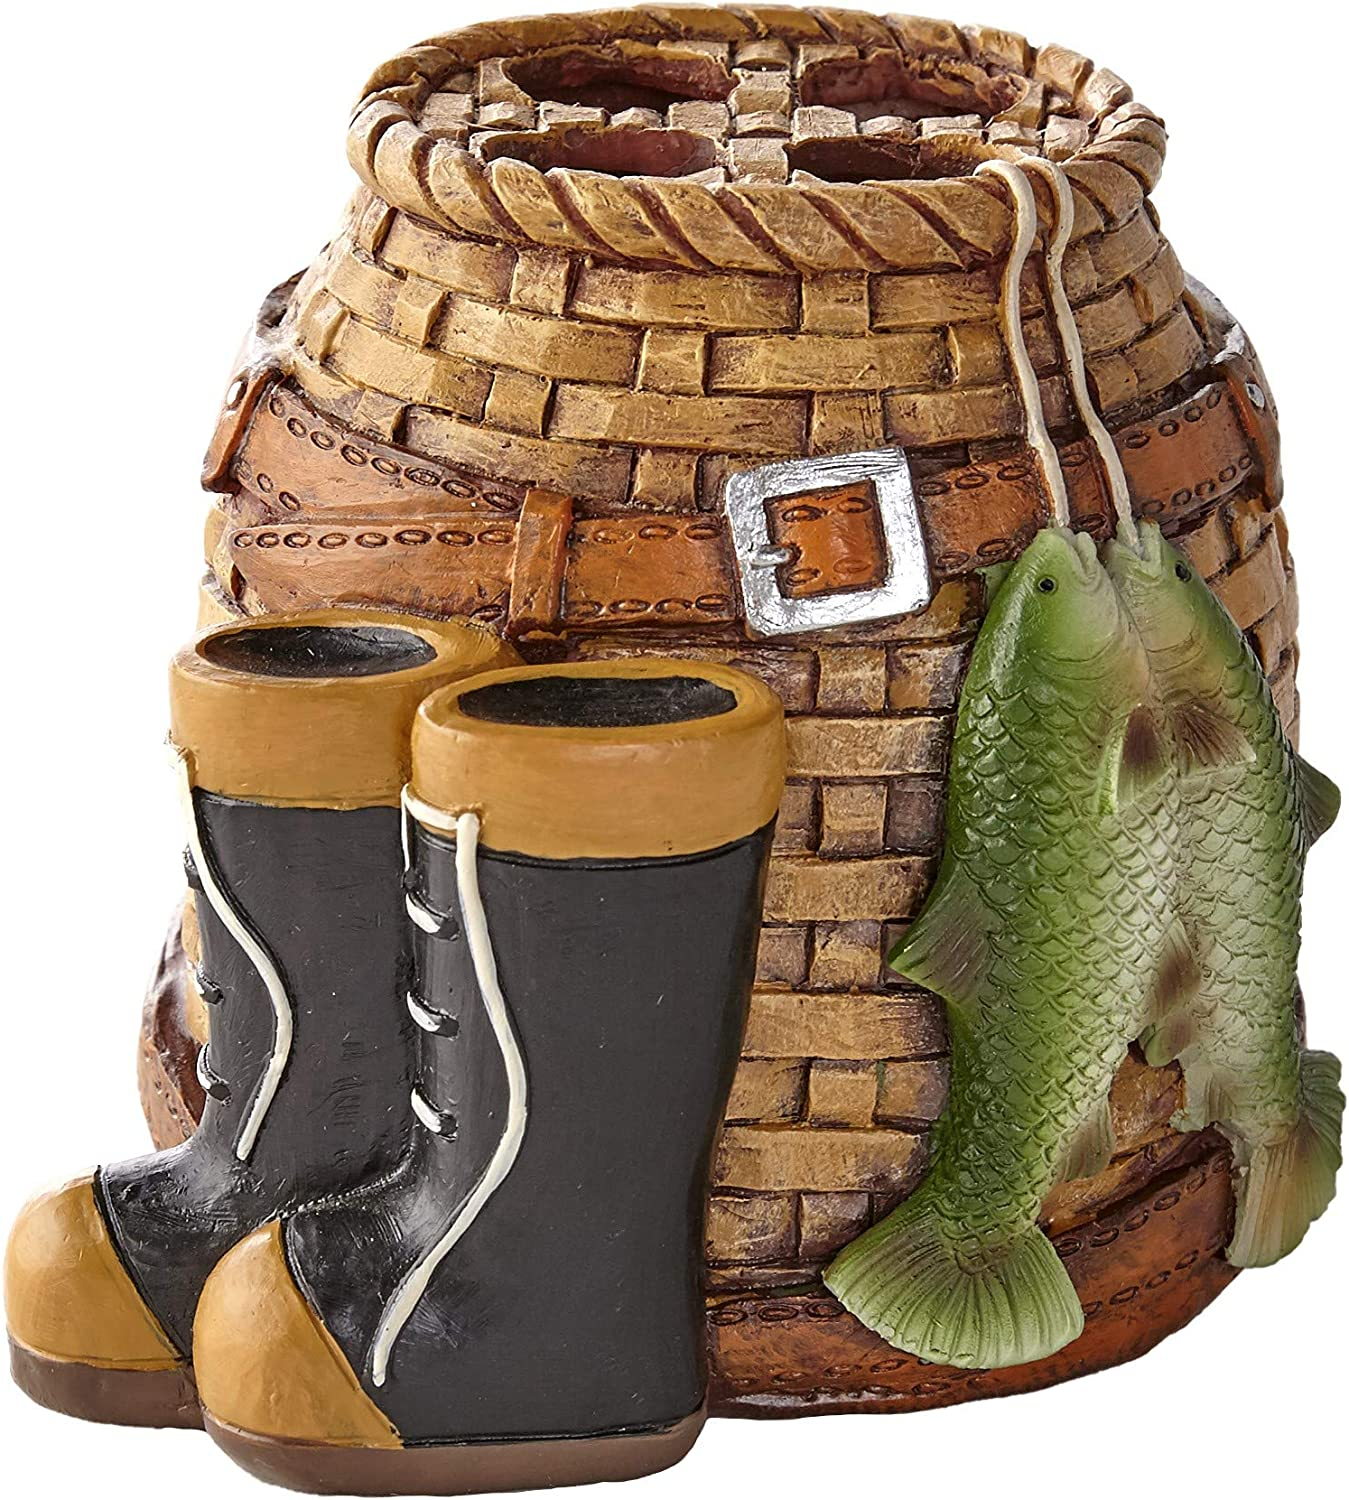 The Lakeside Collection Gone Fishing Toothbrush Holder - Rustic Bathroom Decoration